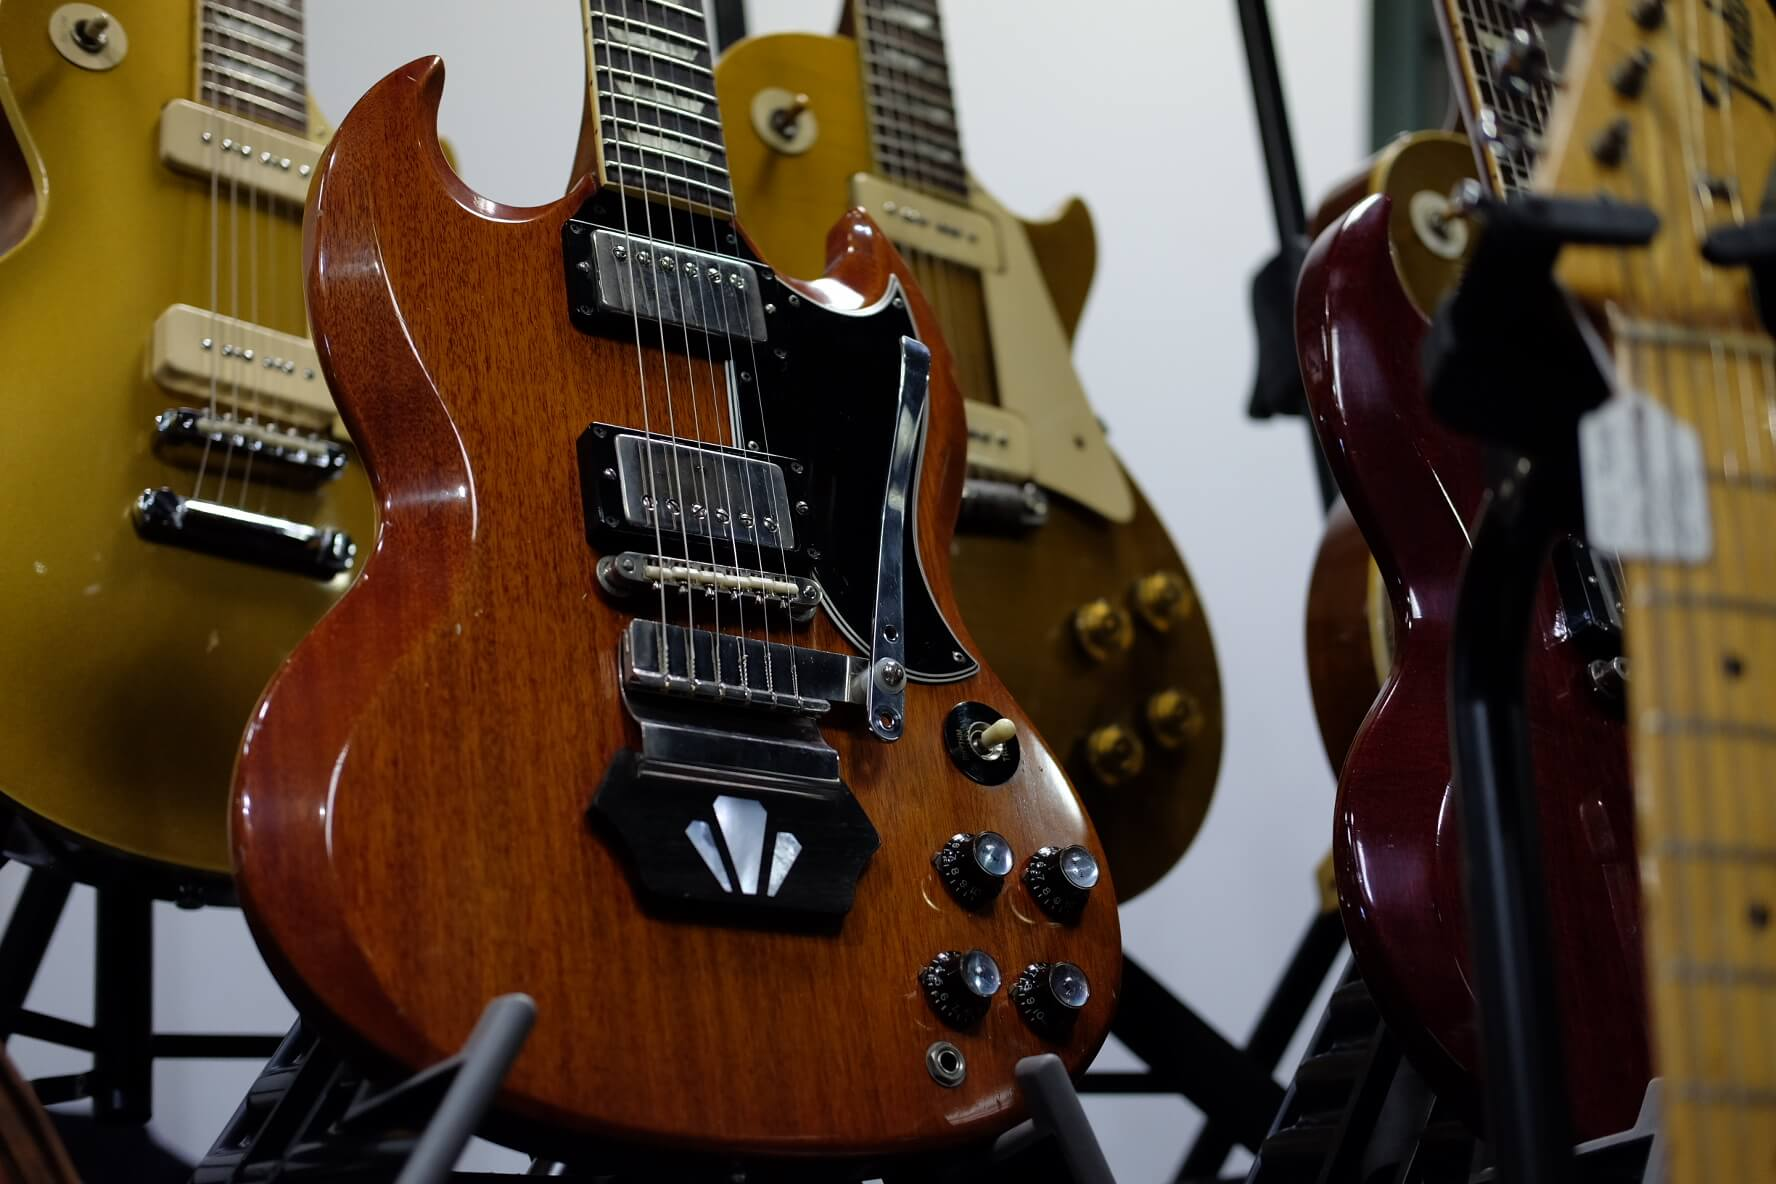 In Pictures: The London International Guitar Show 2018